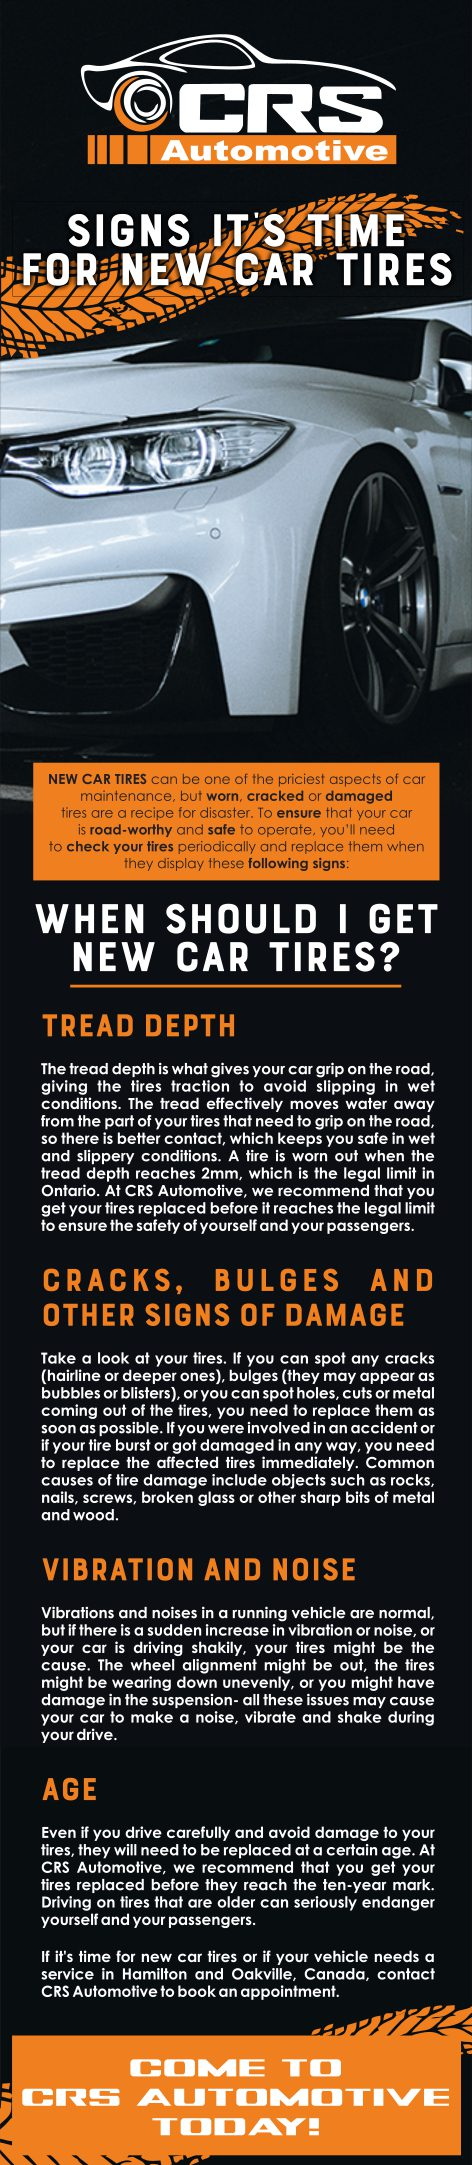 Signs it's time for new car tires